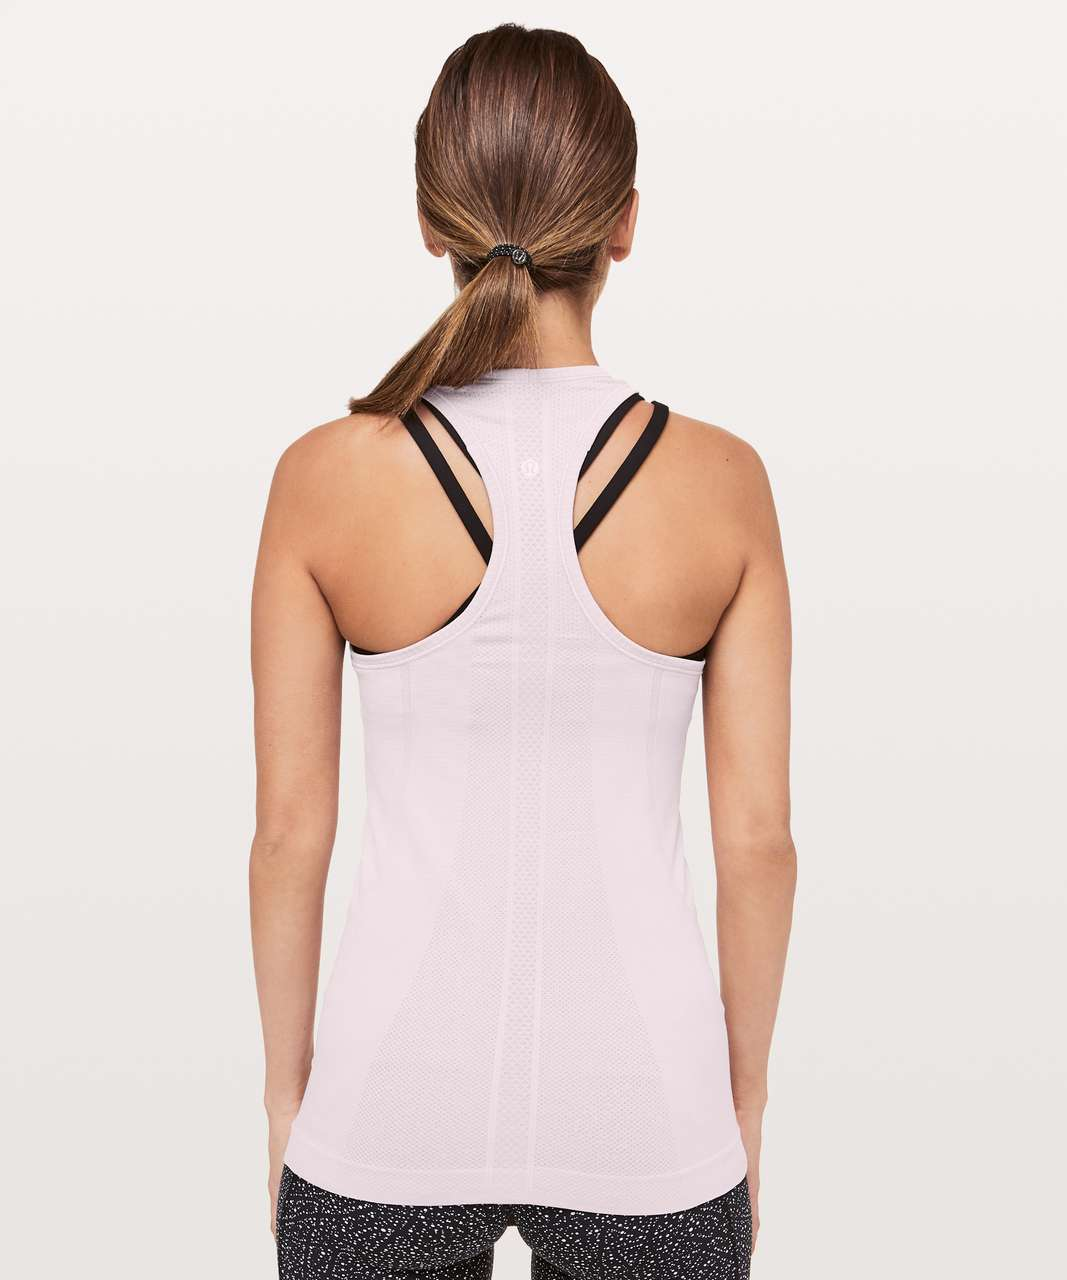 Lululemon Swiftly Tech Racerback - Porcelain Pink / White